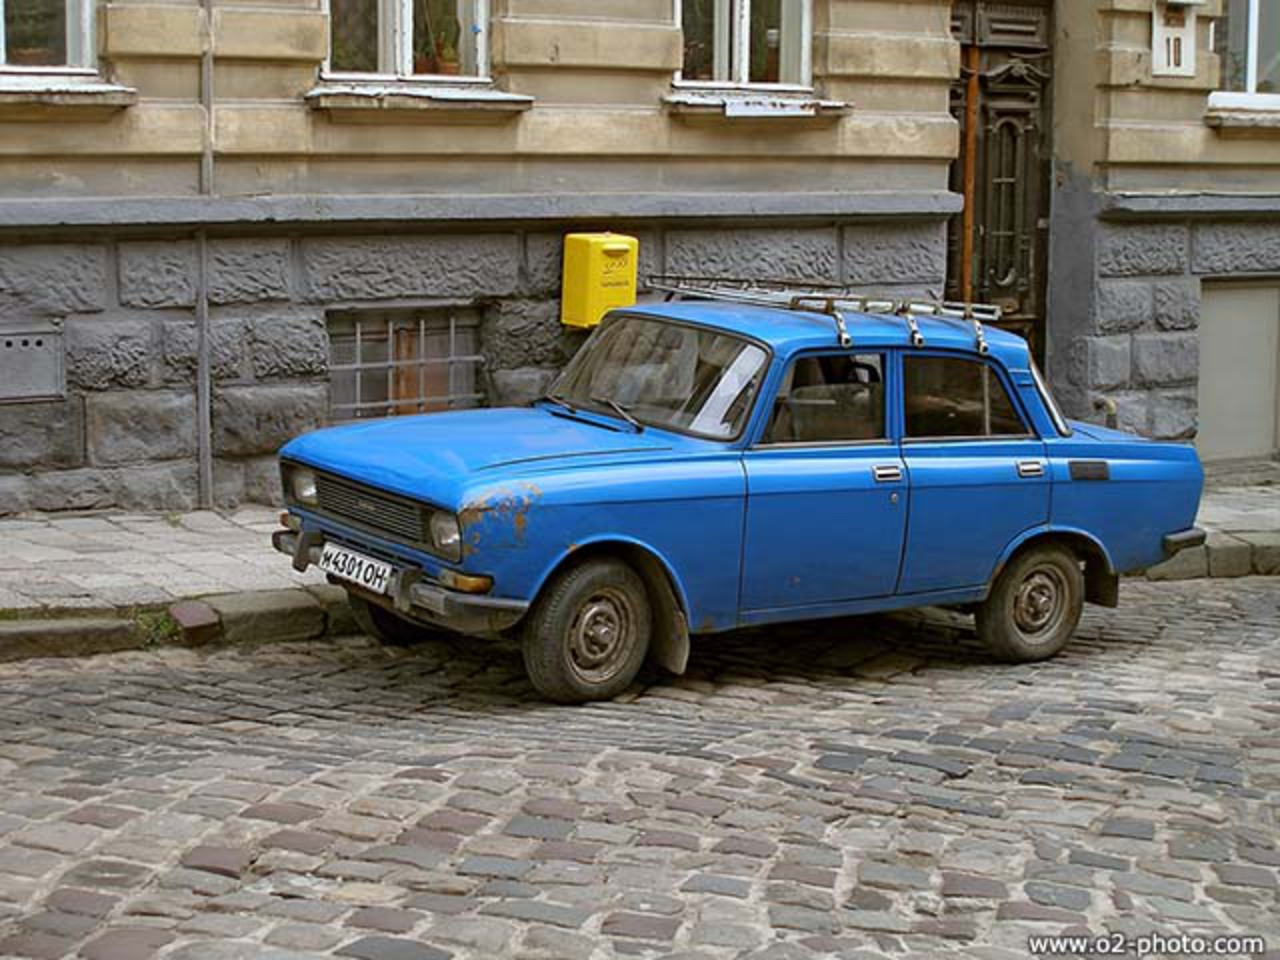 Moskvitch 2140 Photo Gallery: Photo #12 out of 9, Image Size - 750 ...